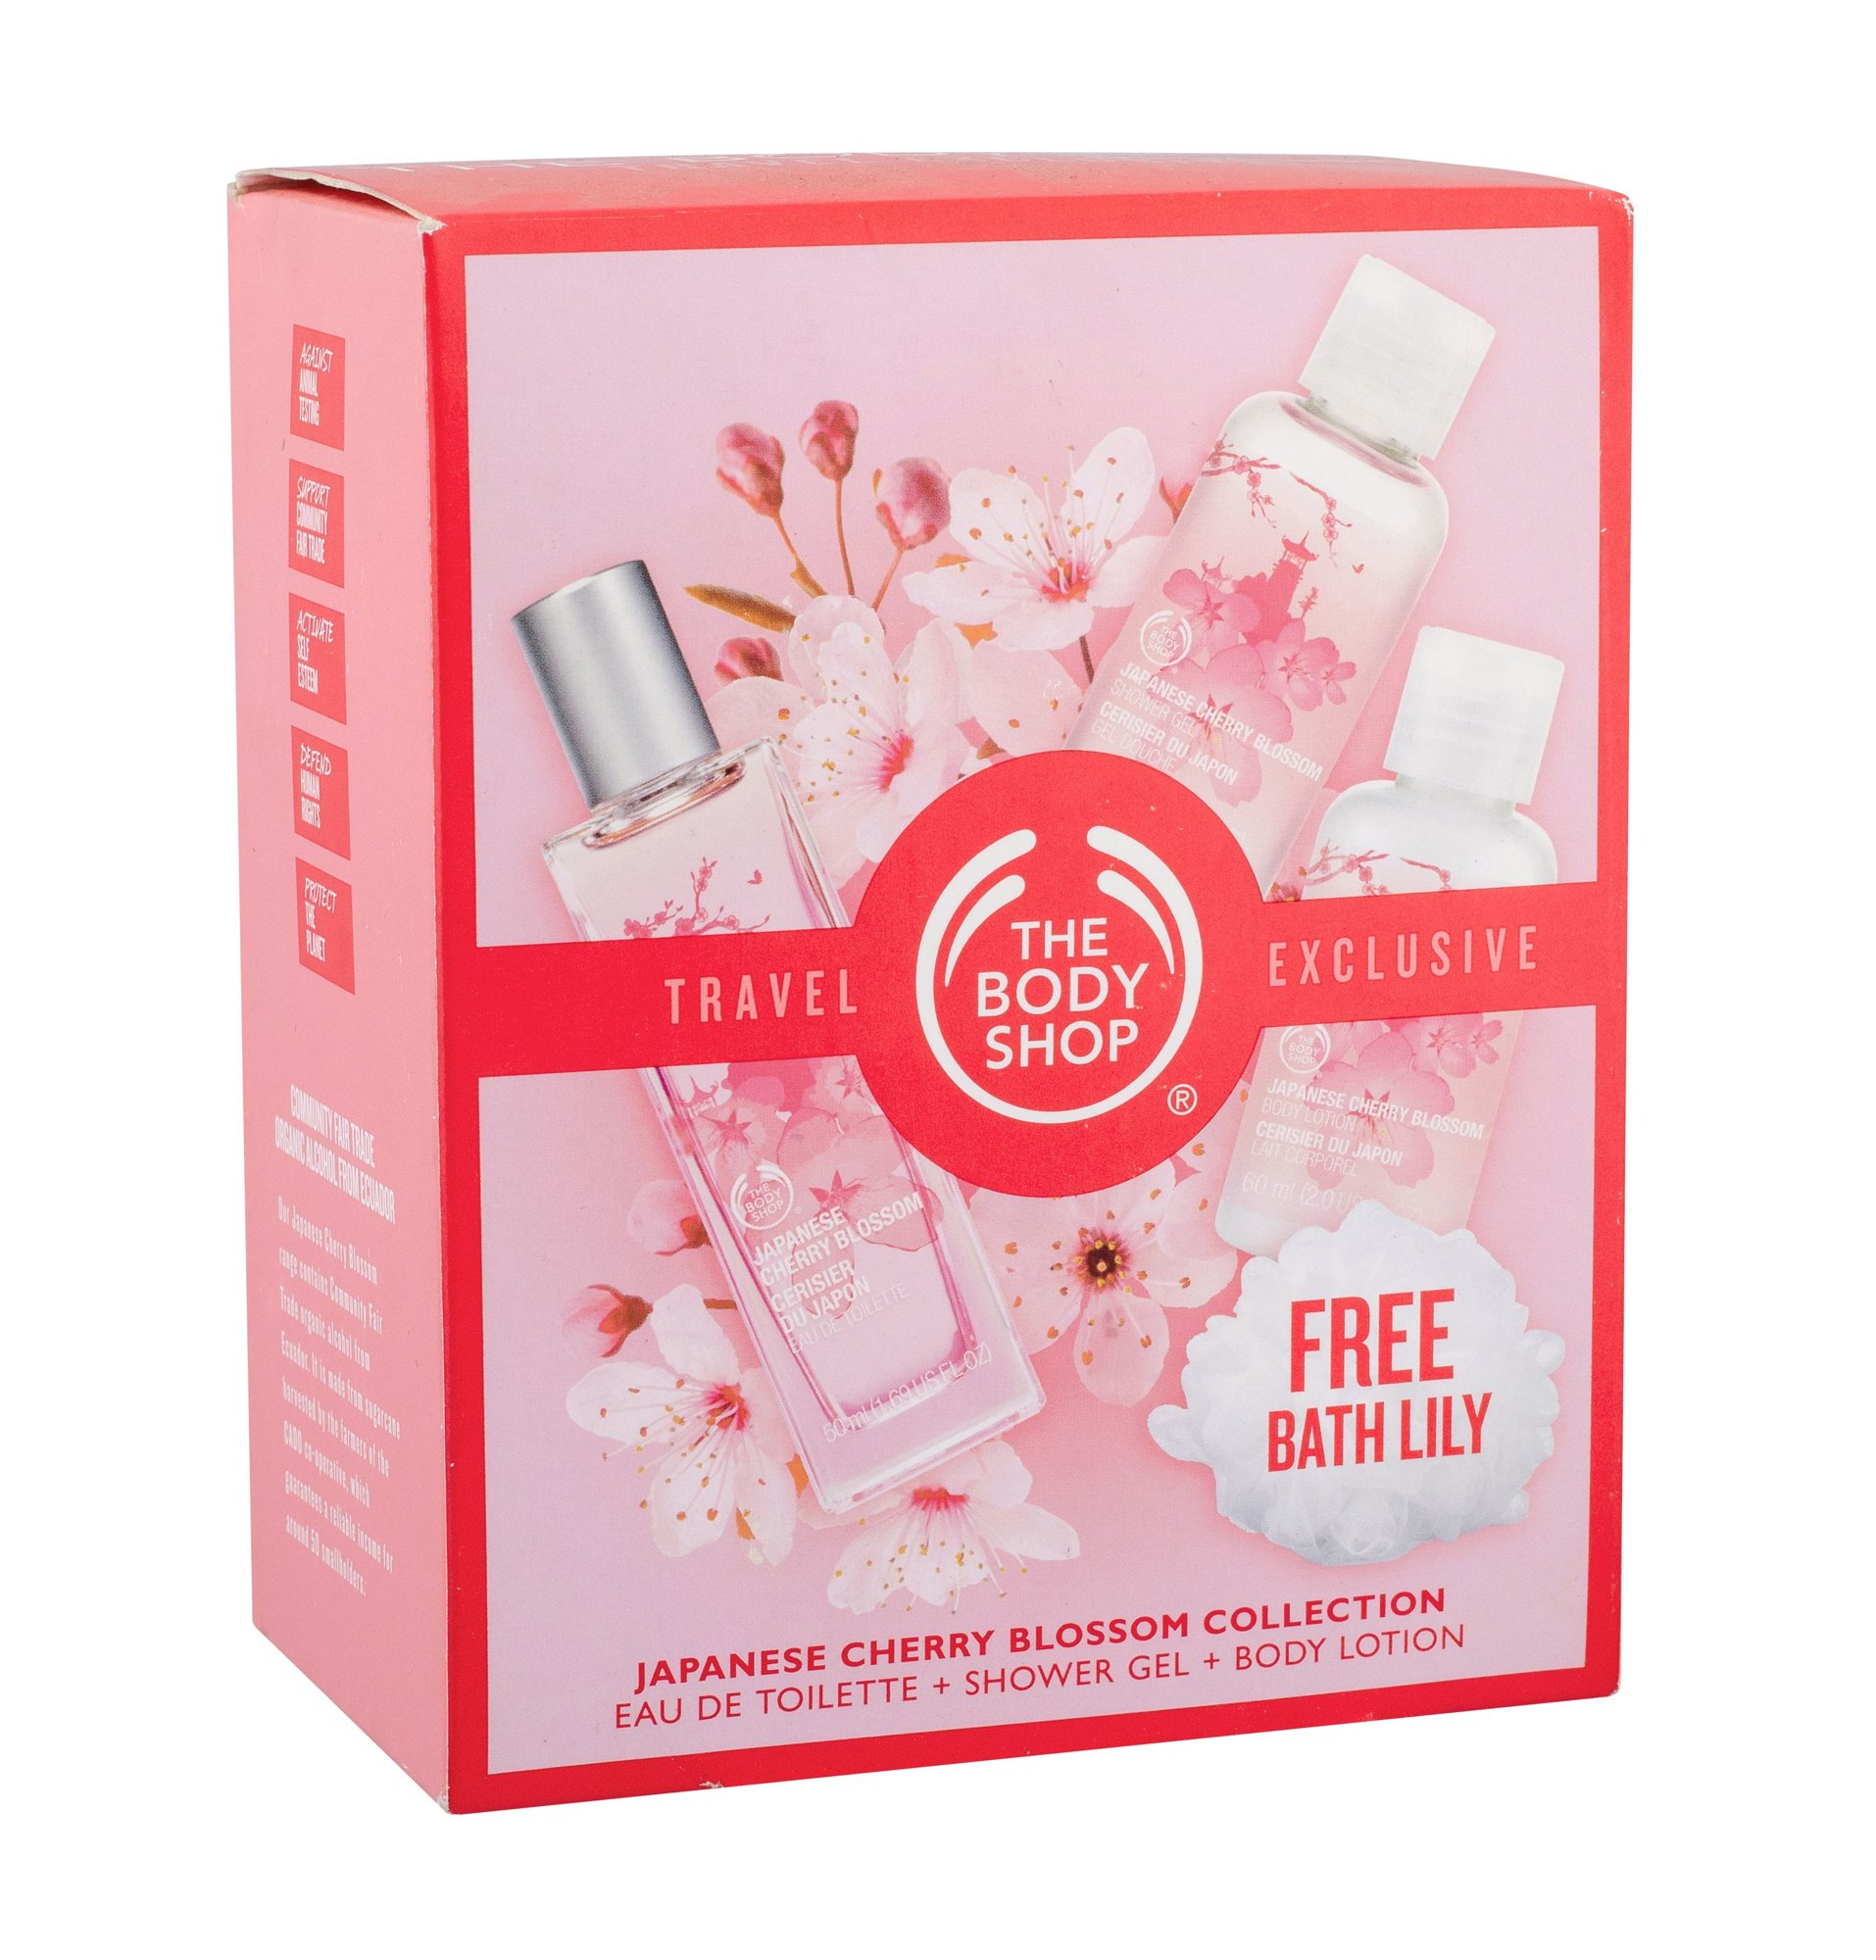 The Body Shop Japanese Cherry Blossom Eau de Toilette 50ml